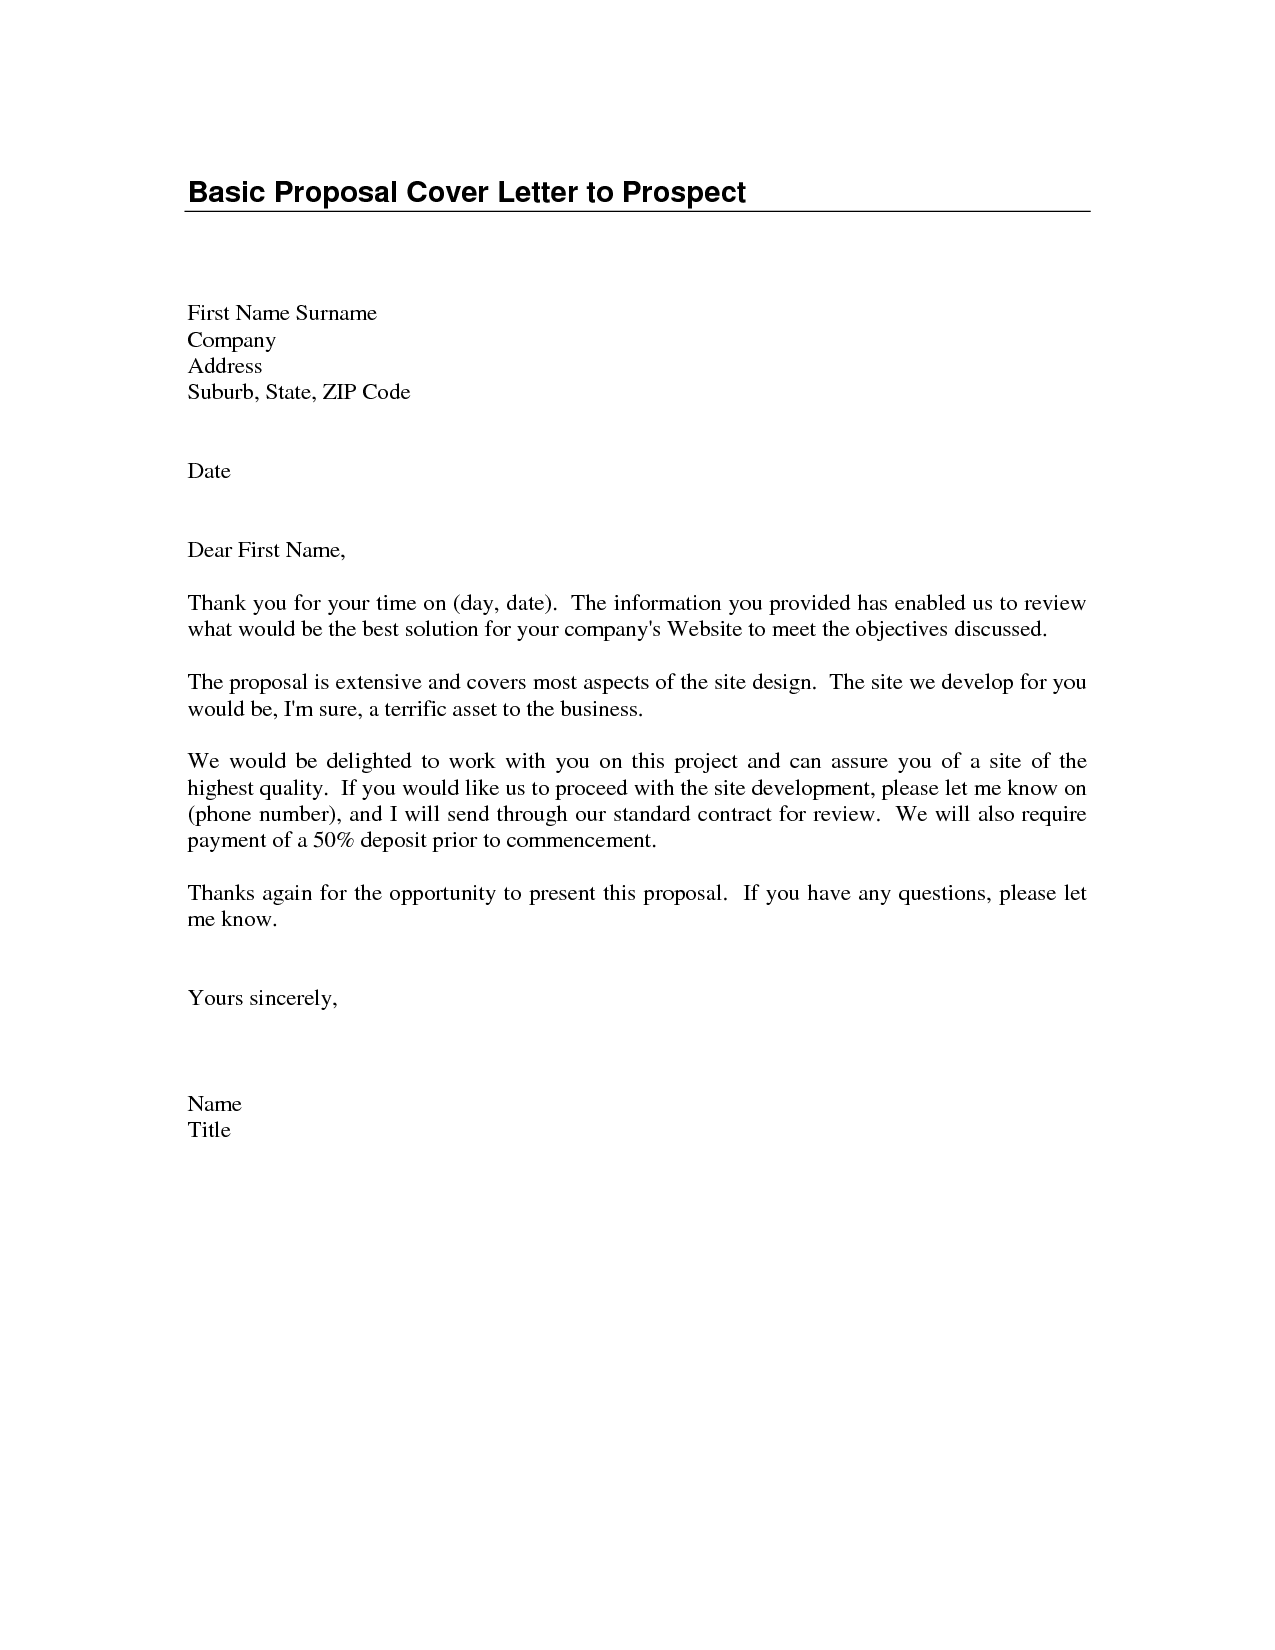 Basic Cover Letter Sample Basic Cover Letters Free BasicSimple – Sample It Cover Letter Template